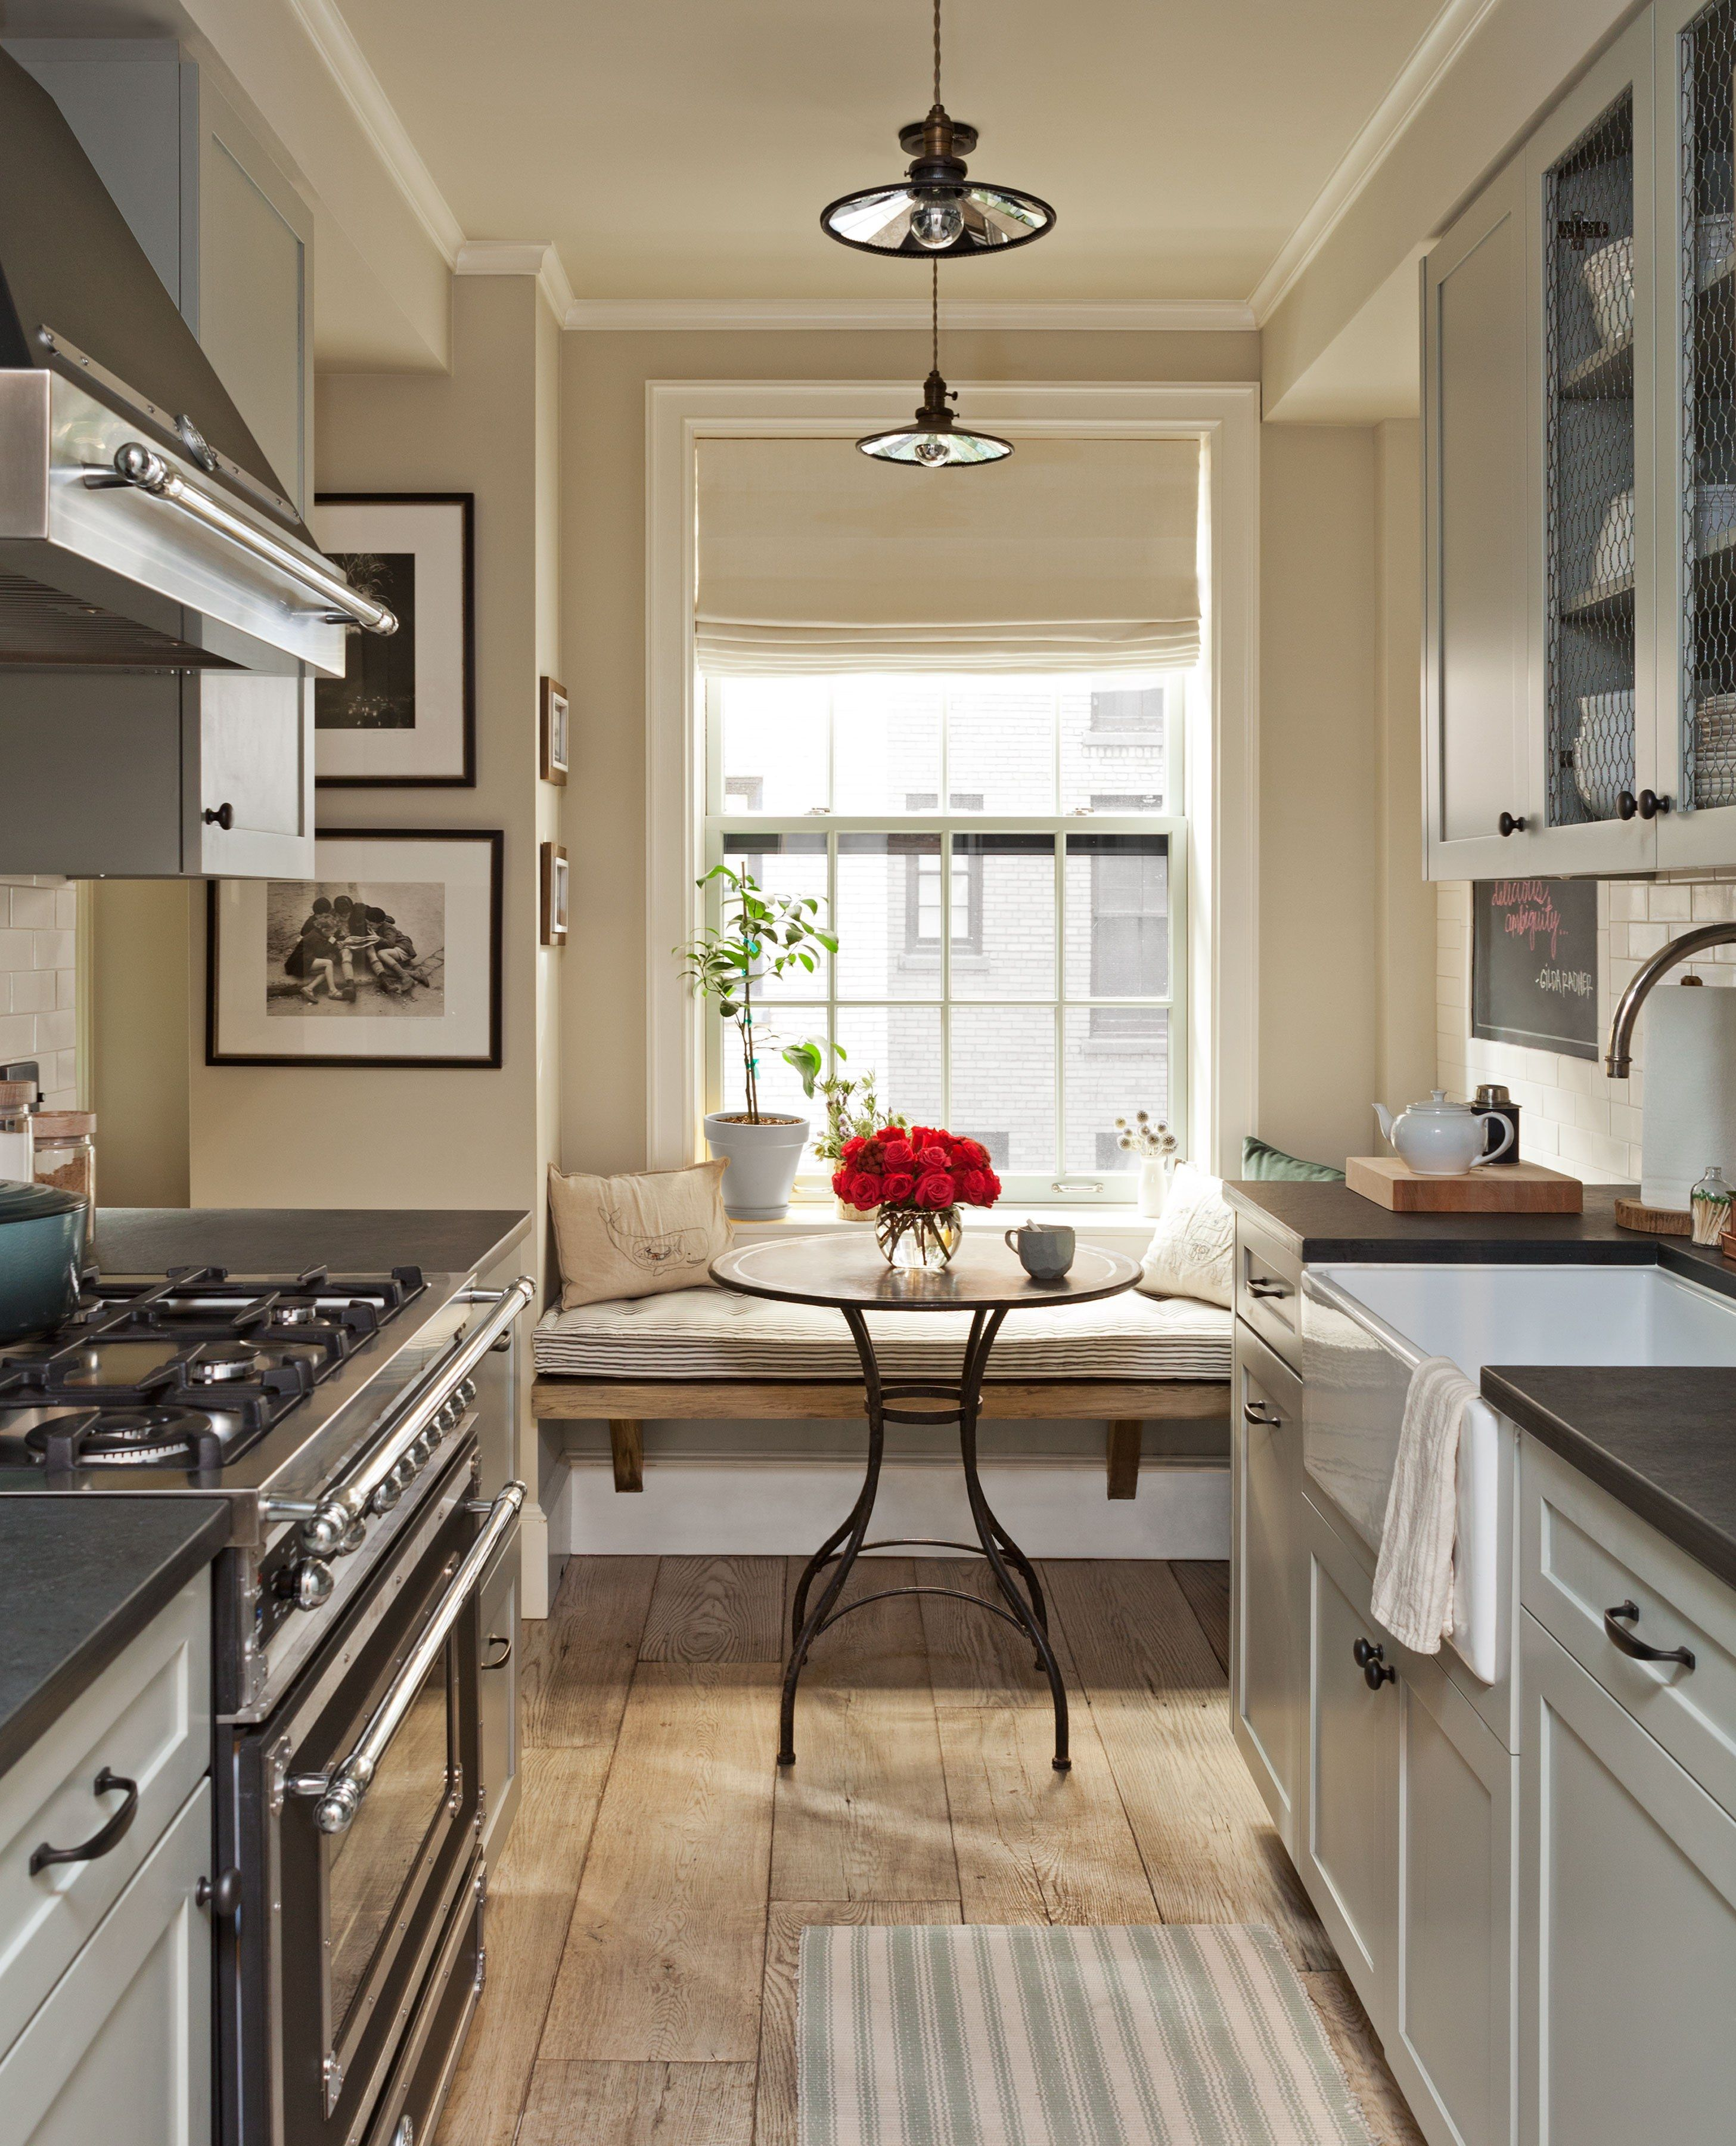 Kitchen Design For Small Narrow Kitchen 5 Tips To Make Your Small Kitchen Feel Large Home Small Galley